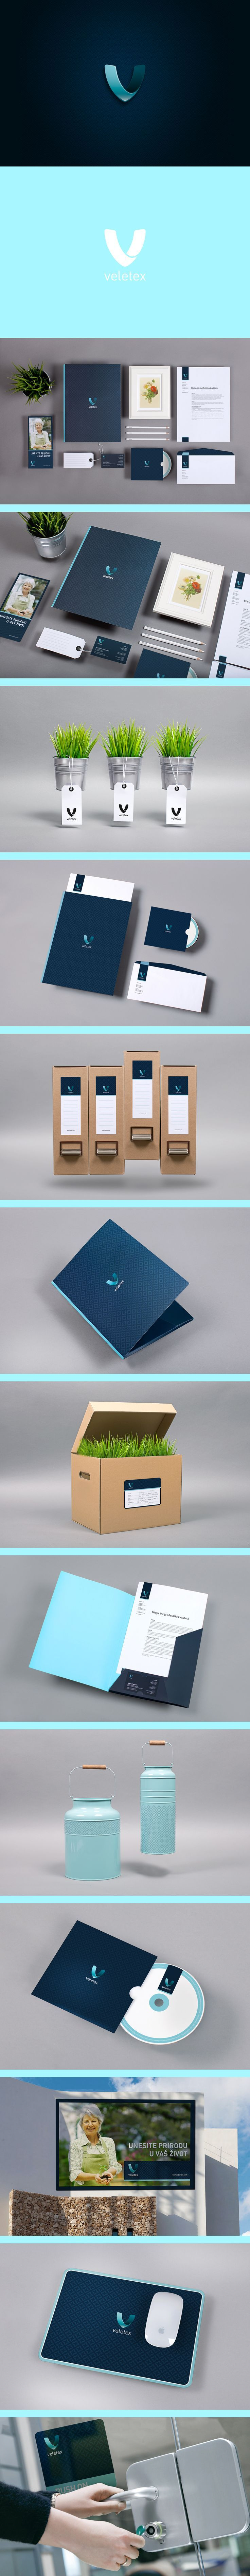 veletex   corporate branding <<< repinned by an #advertising agency from Hamburg, Germany - www.BlickeDeeler.de. The UX Blog podcast is also available on iTunes.